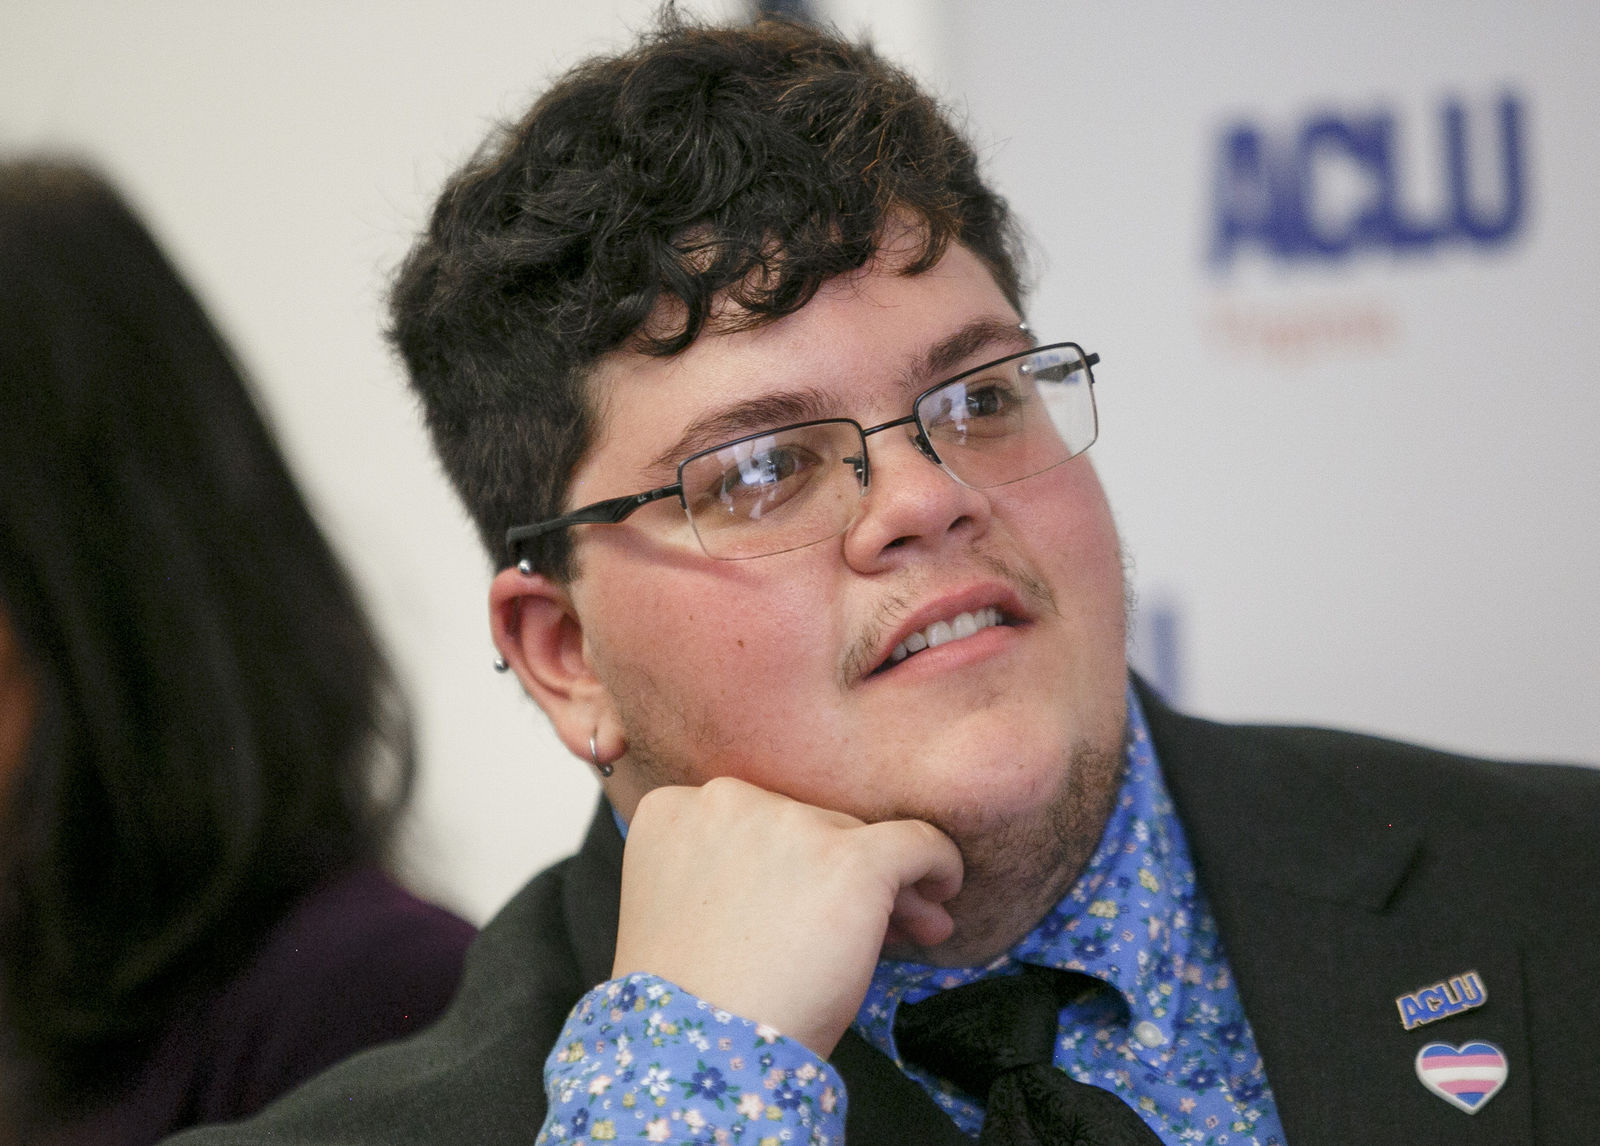 FILE - In this July 23, 2019, file photo, Gavin Grimm, who has become a national face for transgender students, speaks during a news conference held by The ACLU and the ACLU of Virginia at Slover Library in Norfolk, Va. (Kristen Zeis/The Daily Press via AP, File)